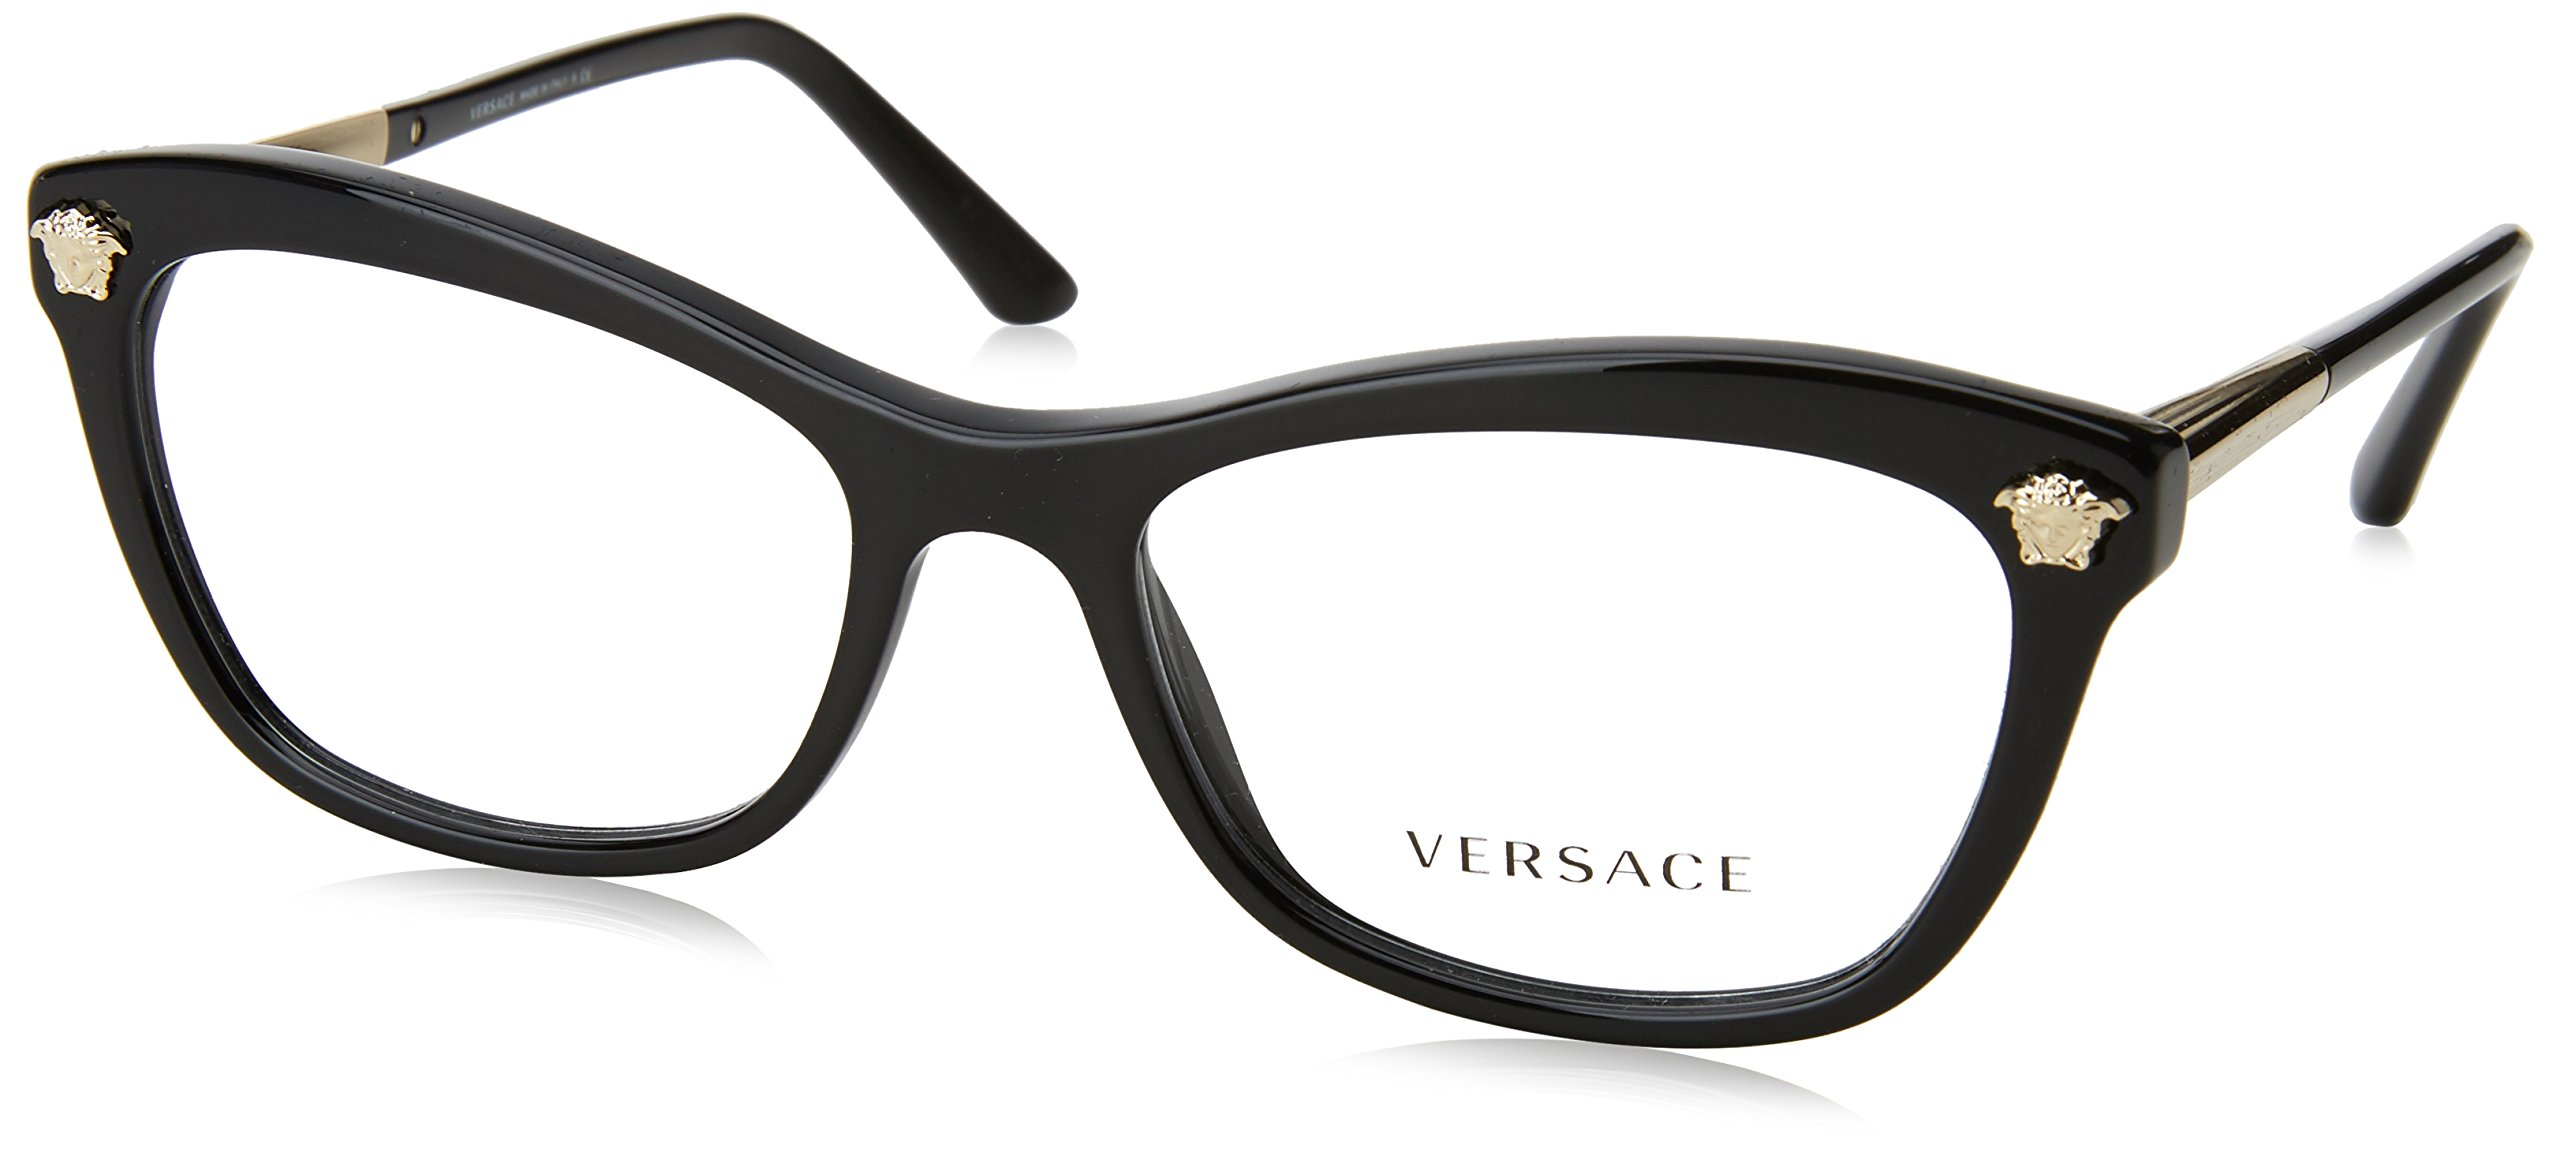 Versace VE3224 Eyeglass Frames GB1-54 - Black VE3224-GB1-54 by Versace